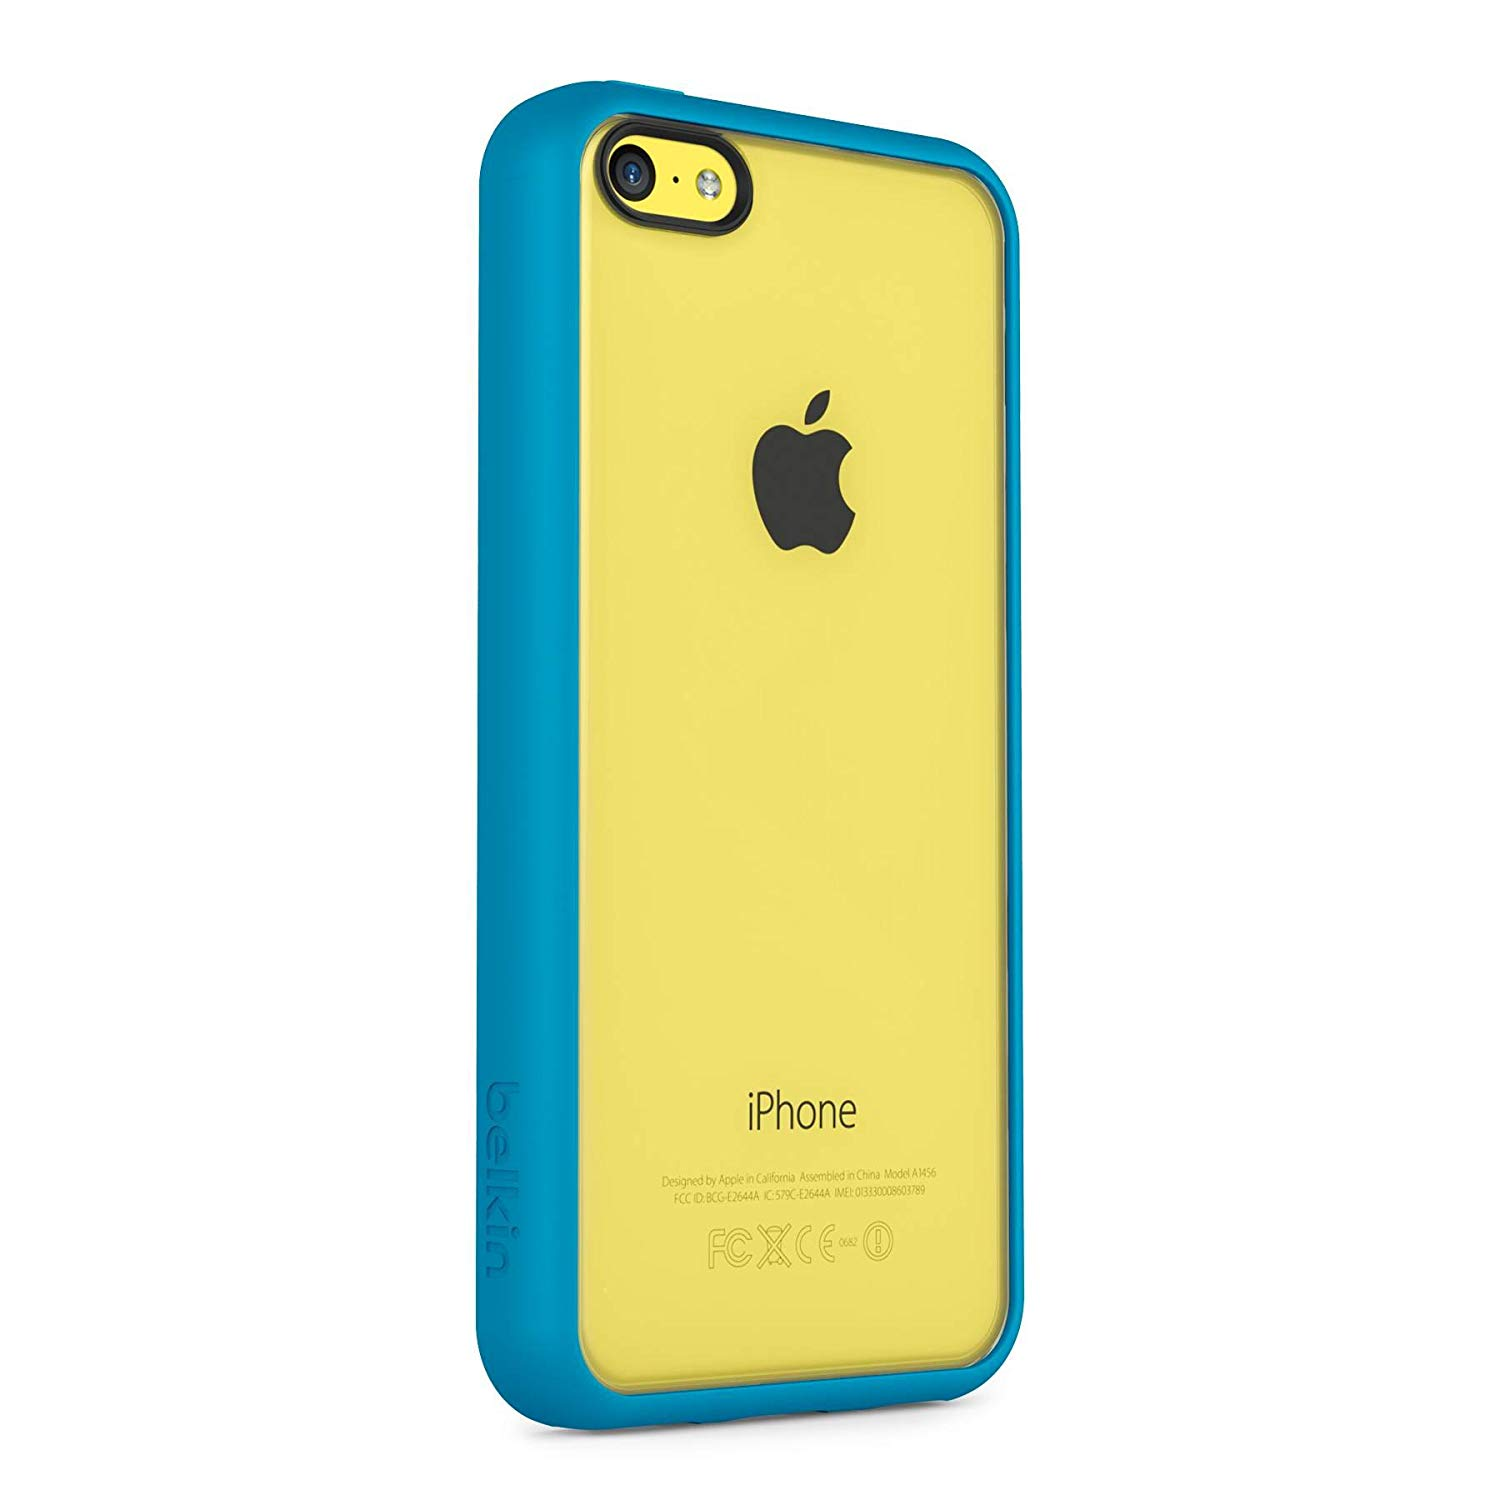 prix iphone 5c amazon